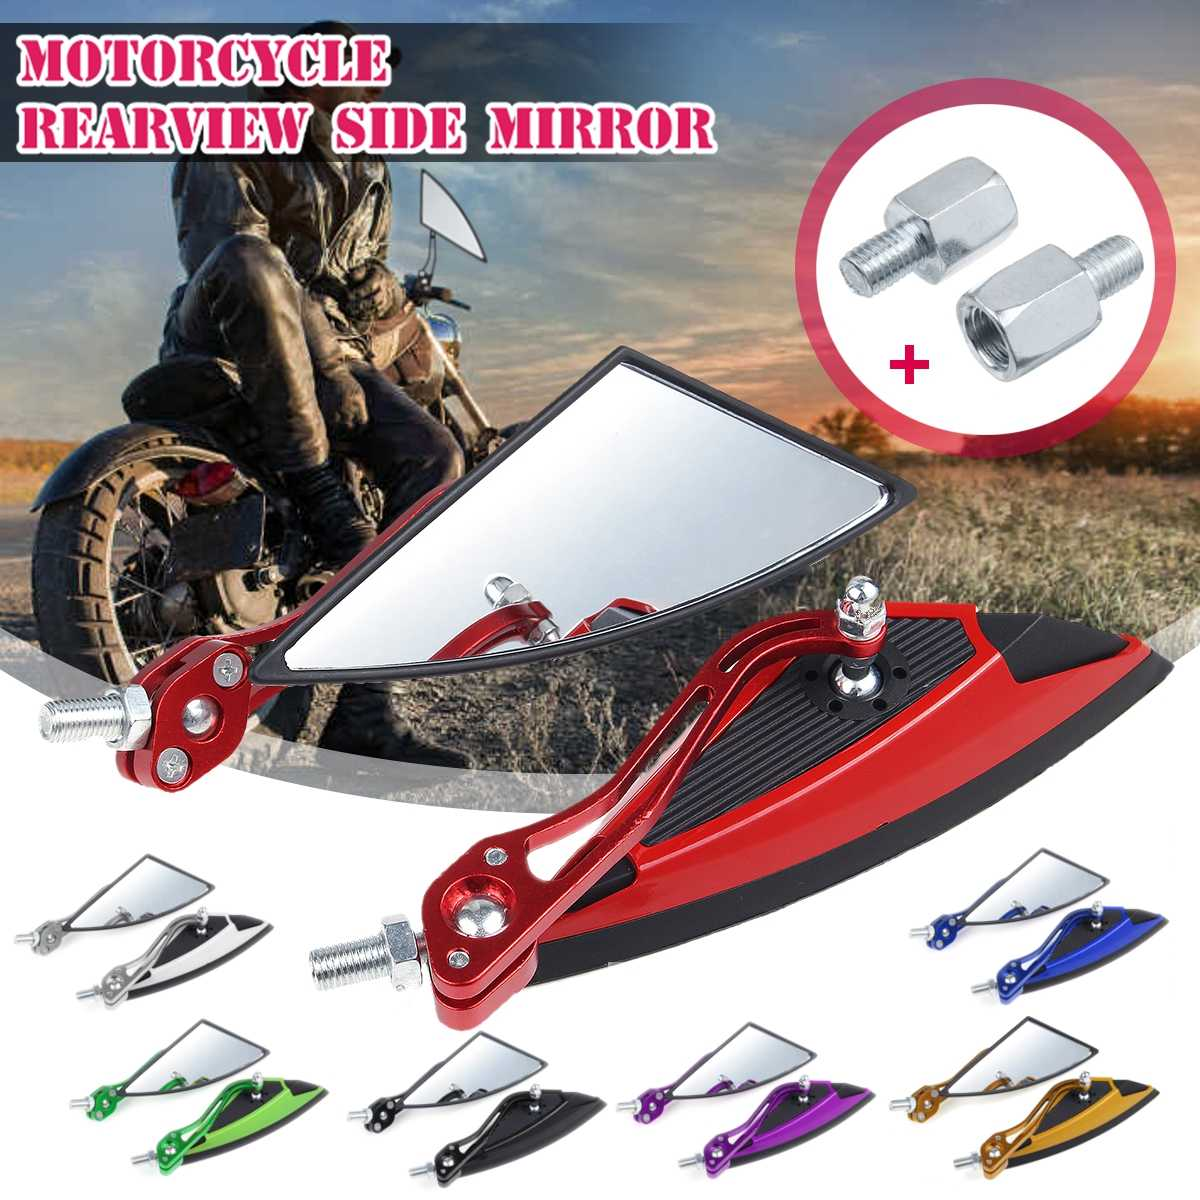 8mm Triangle ATV Off-road Pitbike Retroviseur Mirror Part Motorcycle Rearview Mirror Motorbike Side Moto Accessories Scooter image